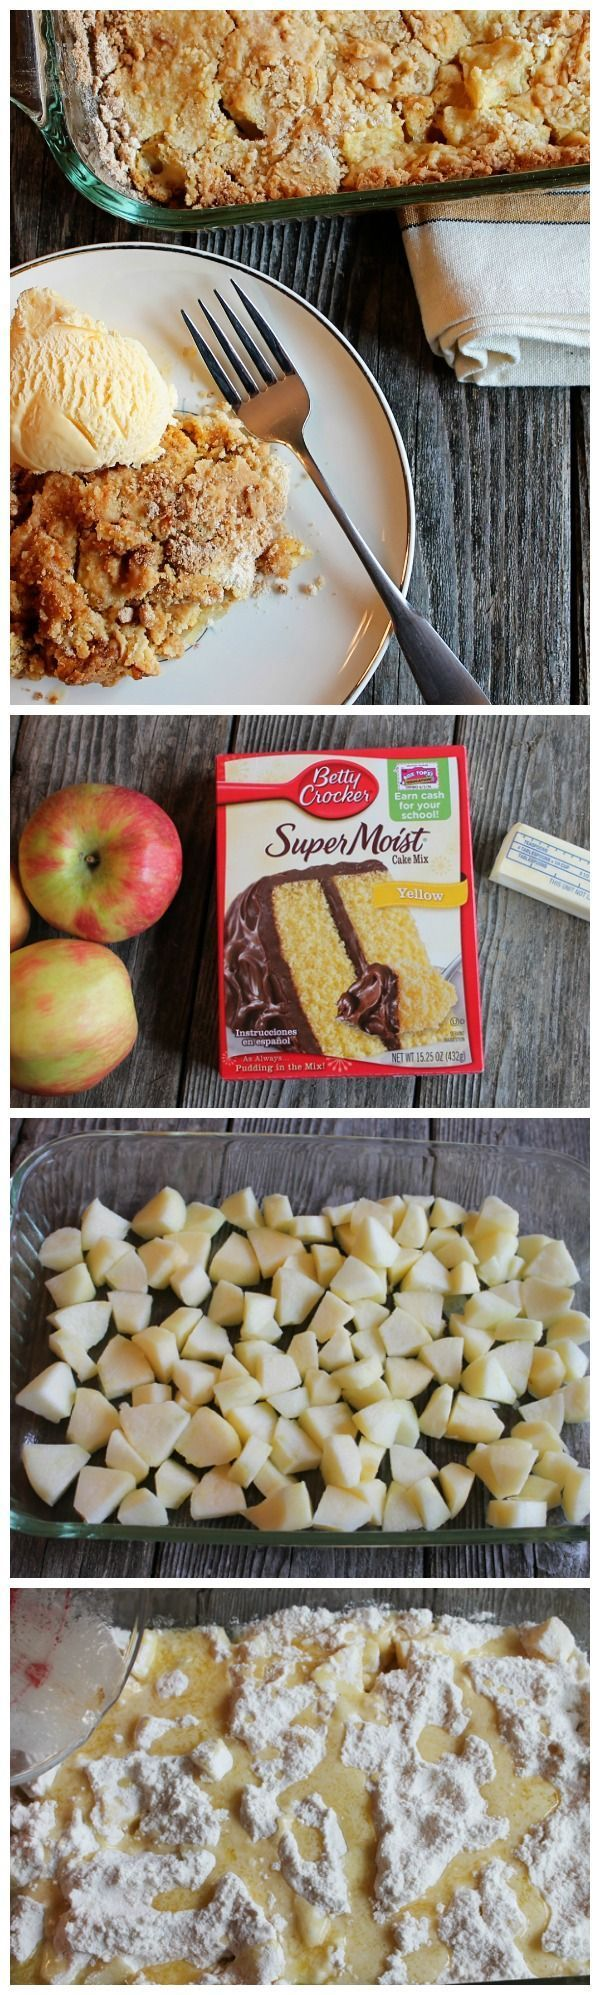 Recipe using yellow cake mix and apples